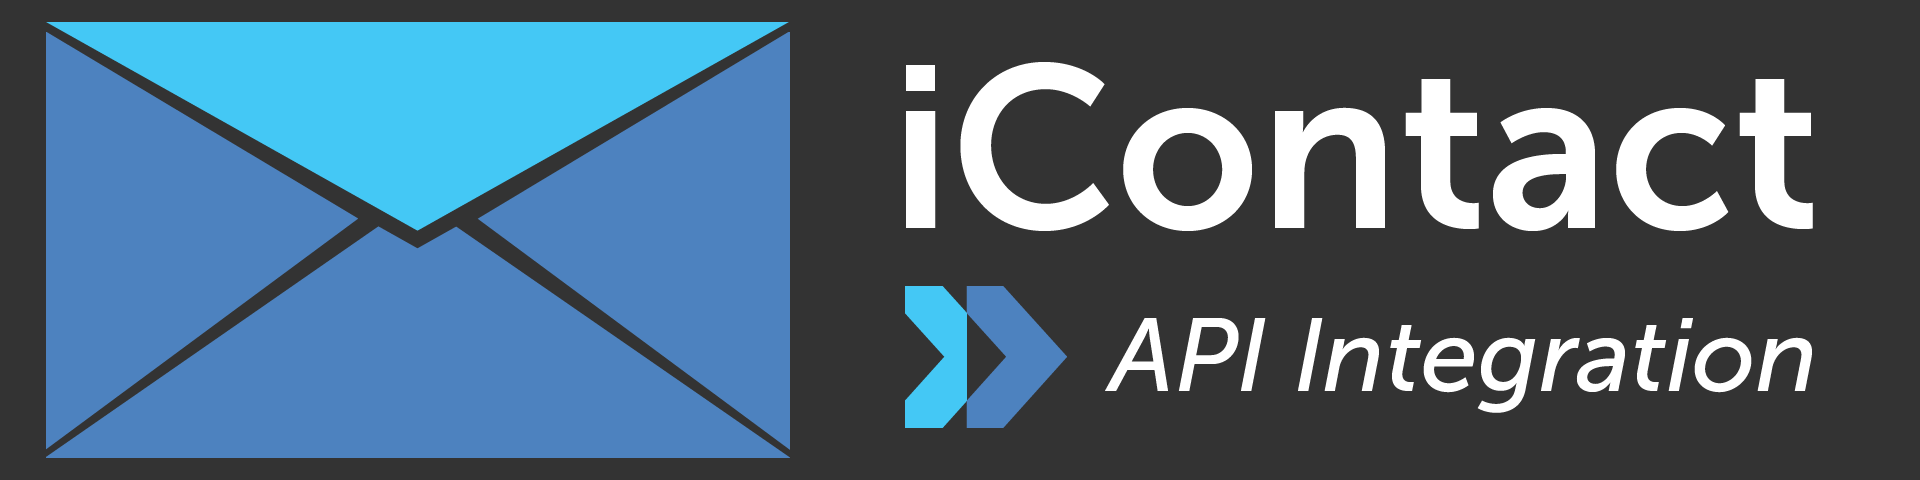 iContact_banner.png